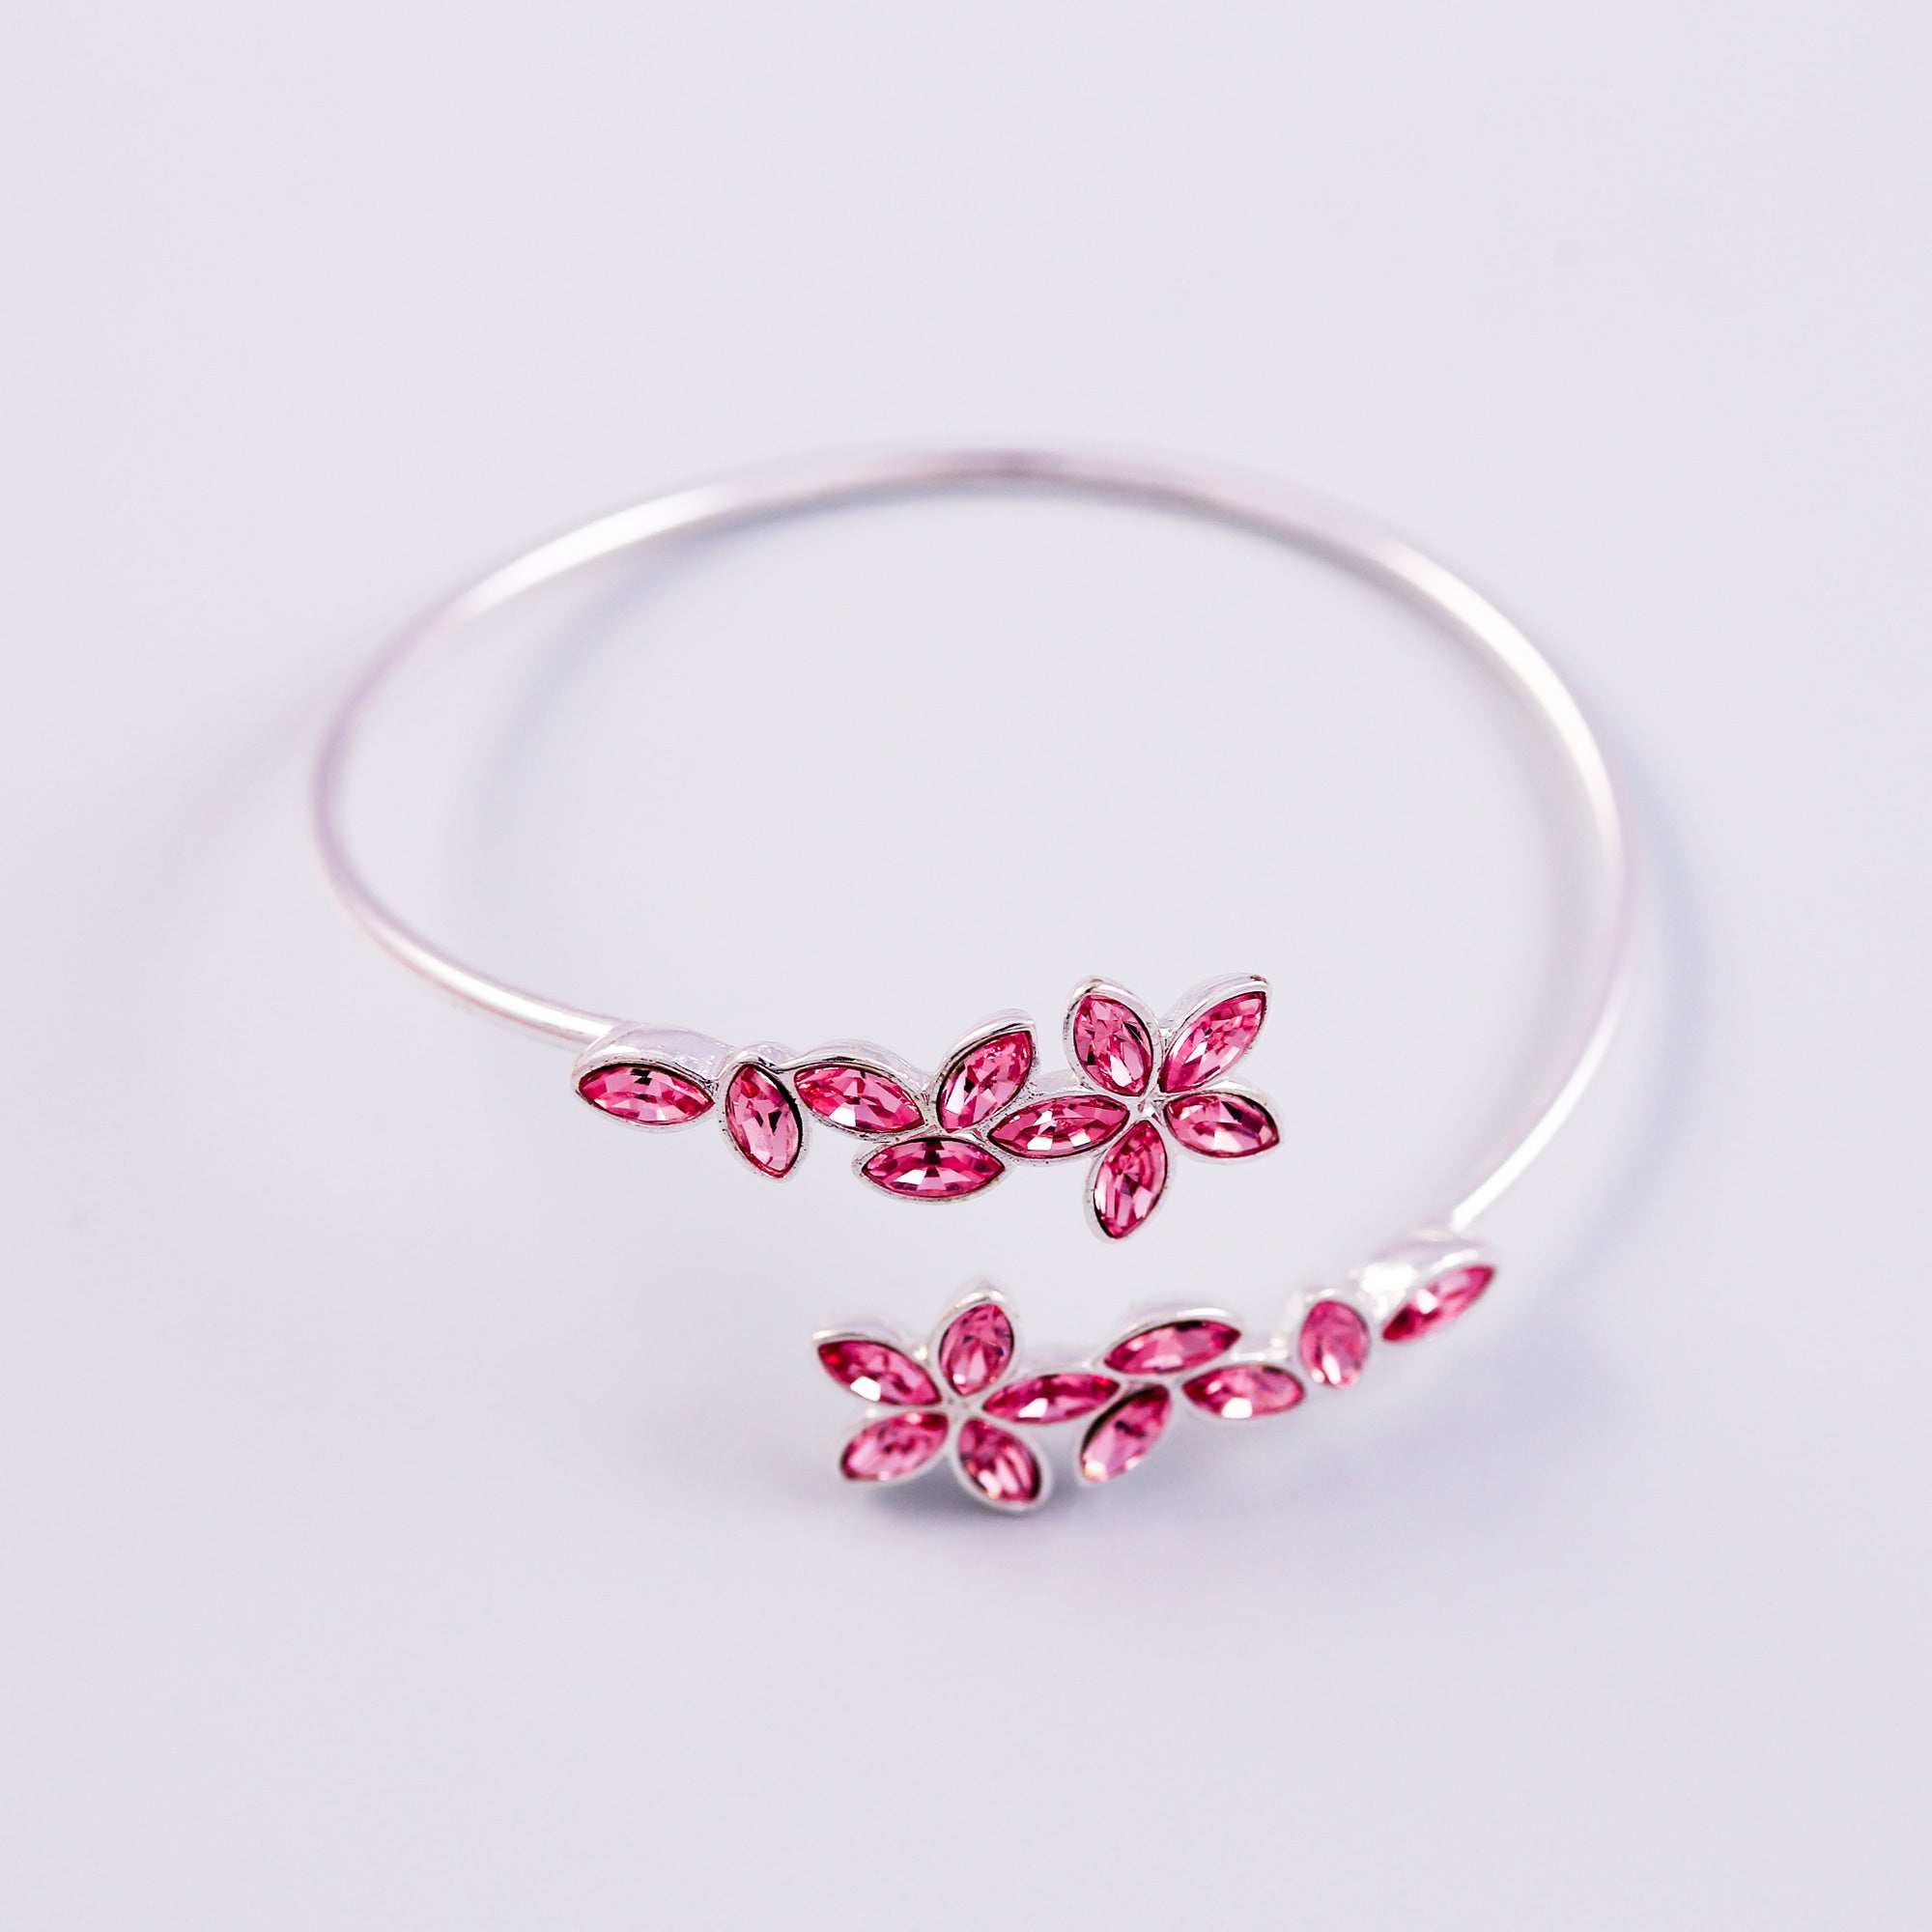 Silver & Rose Sakura Wraparound Bangle